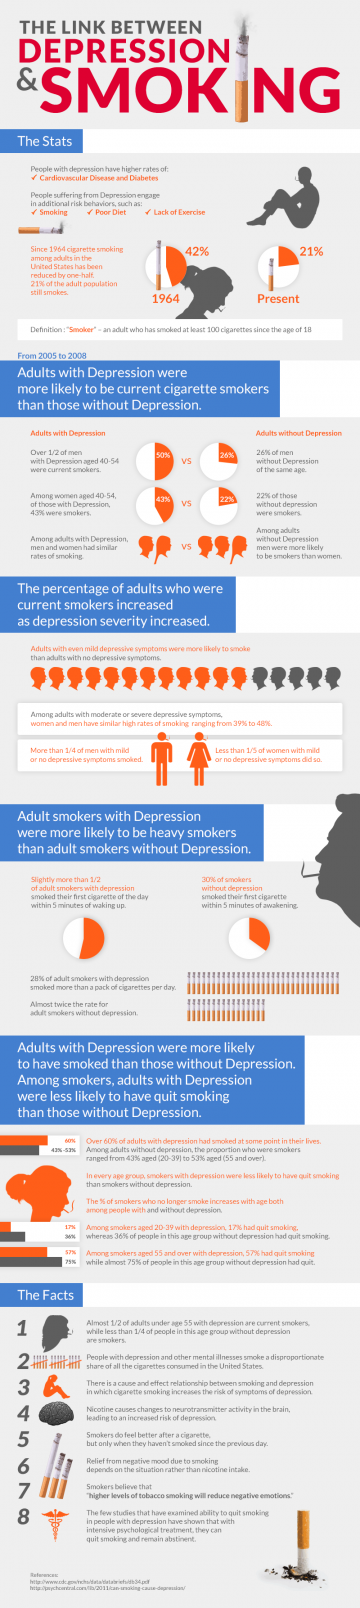 The-Link-Between-Smoking-and-Depression-Infographic-360x1608.png